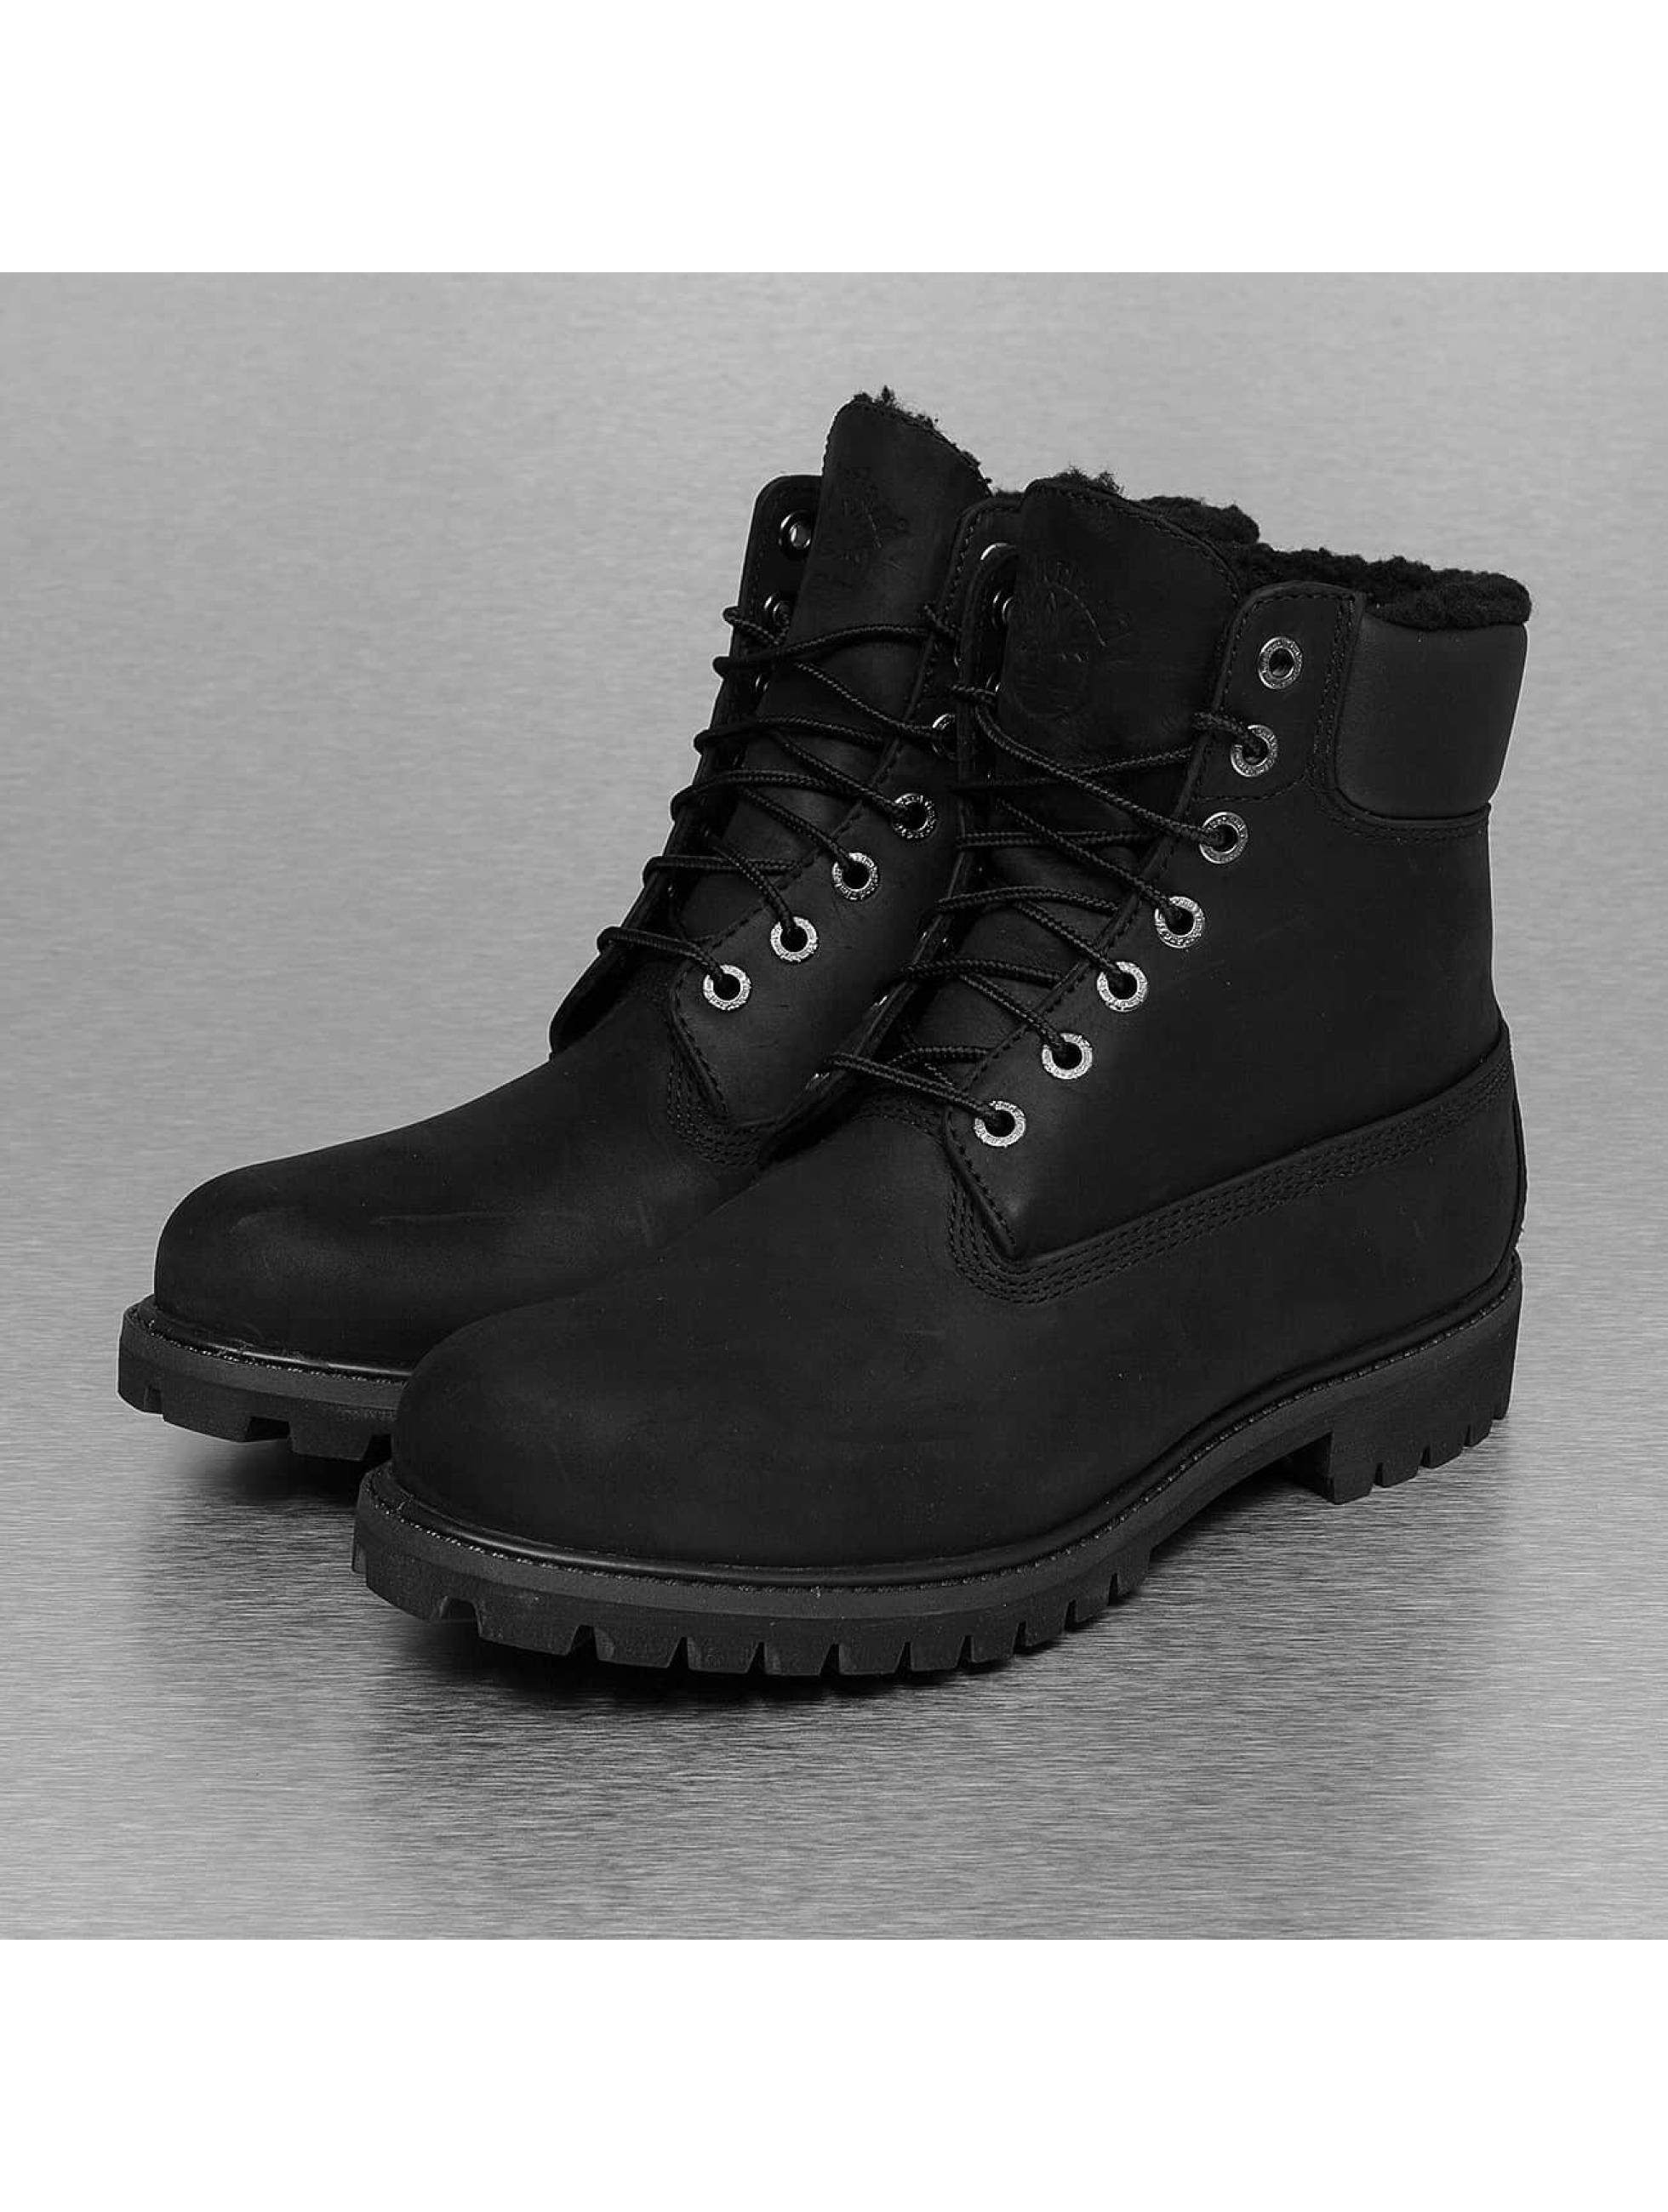 Timberland Heritage 6 In Lined noir Chaussures montantes homme